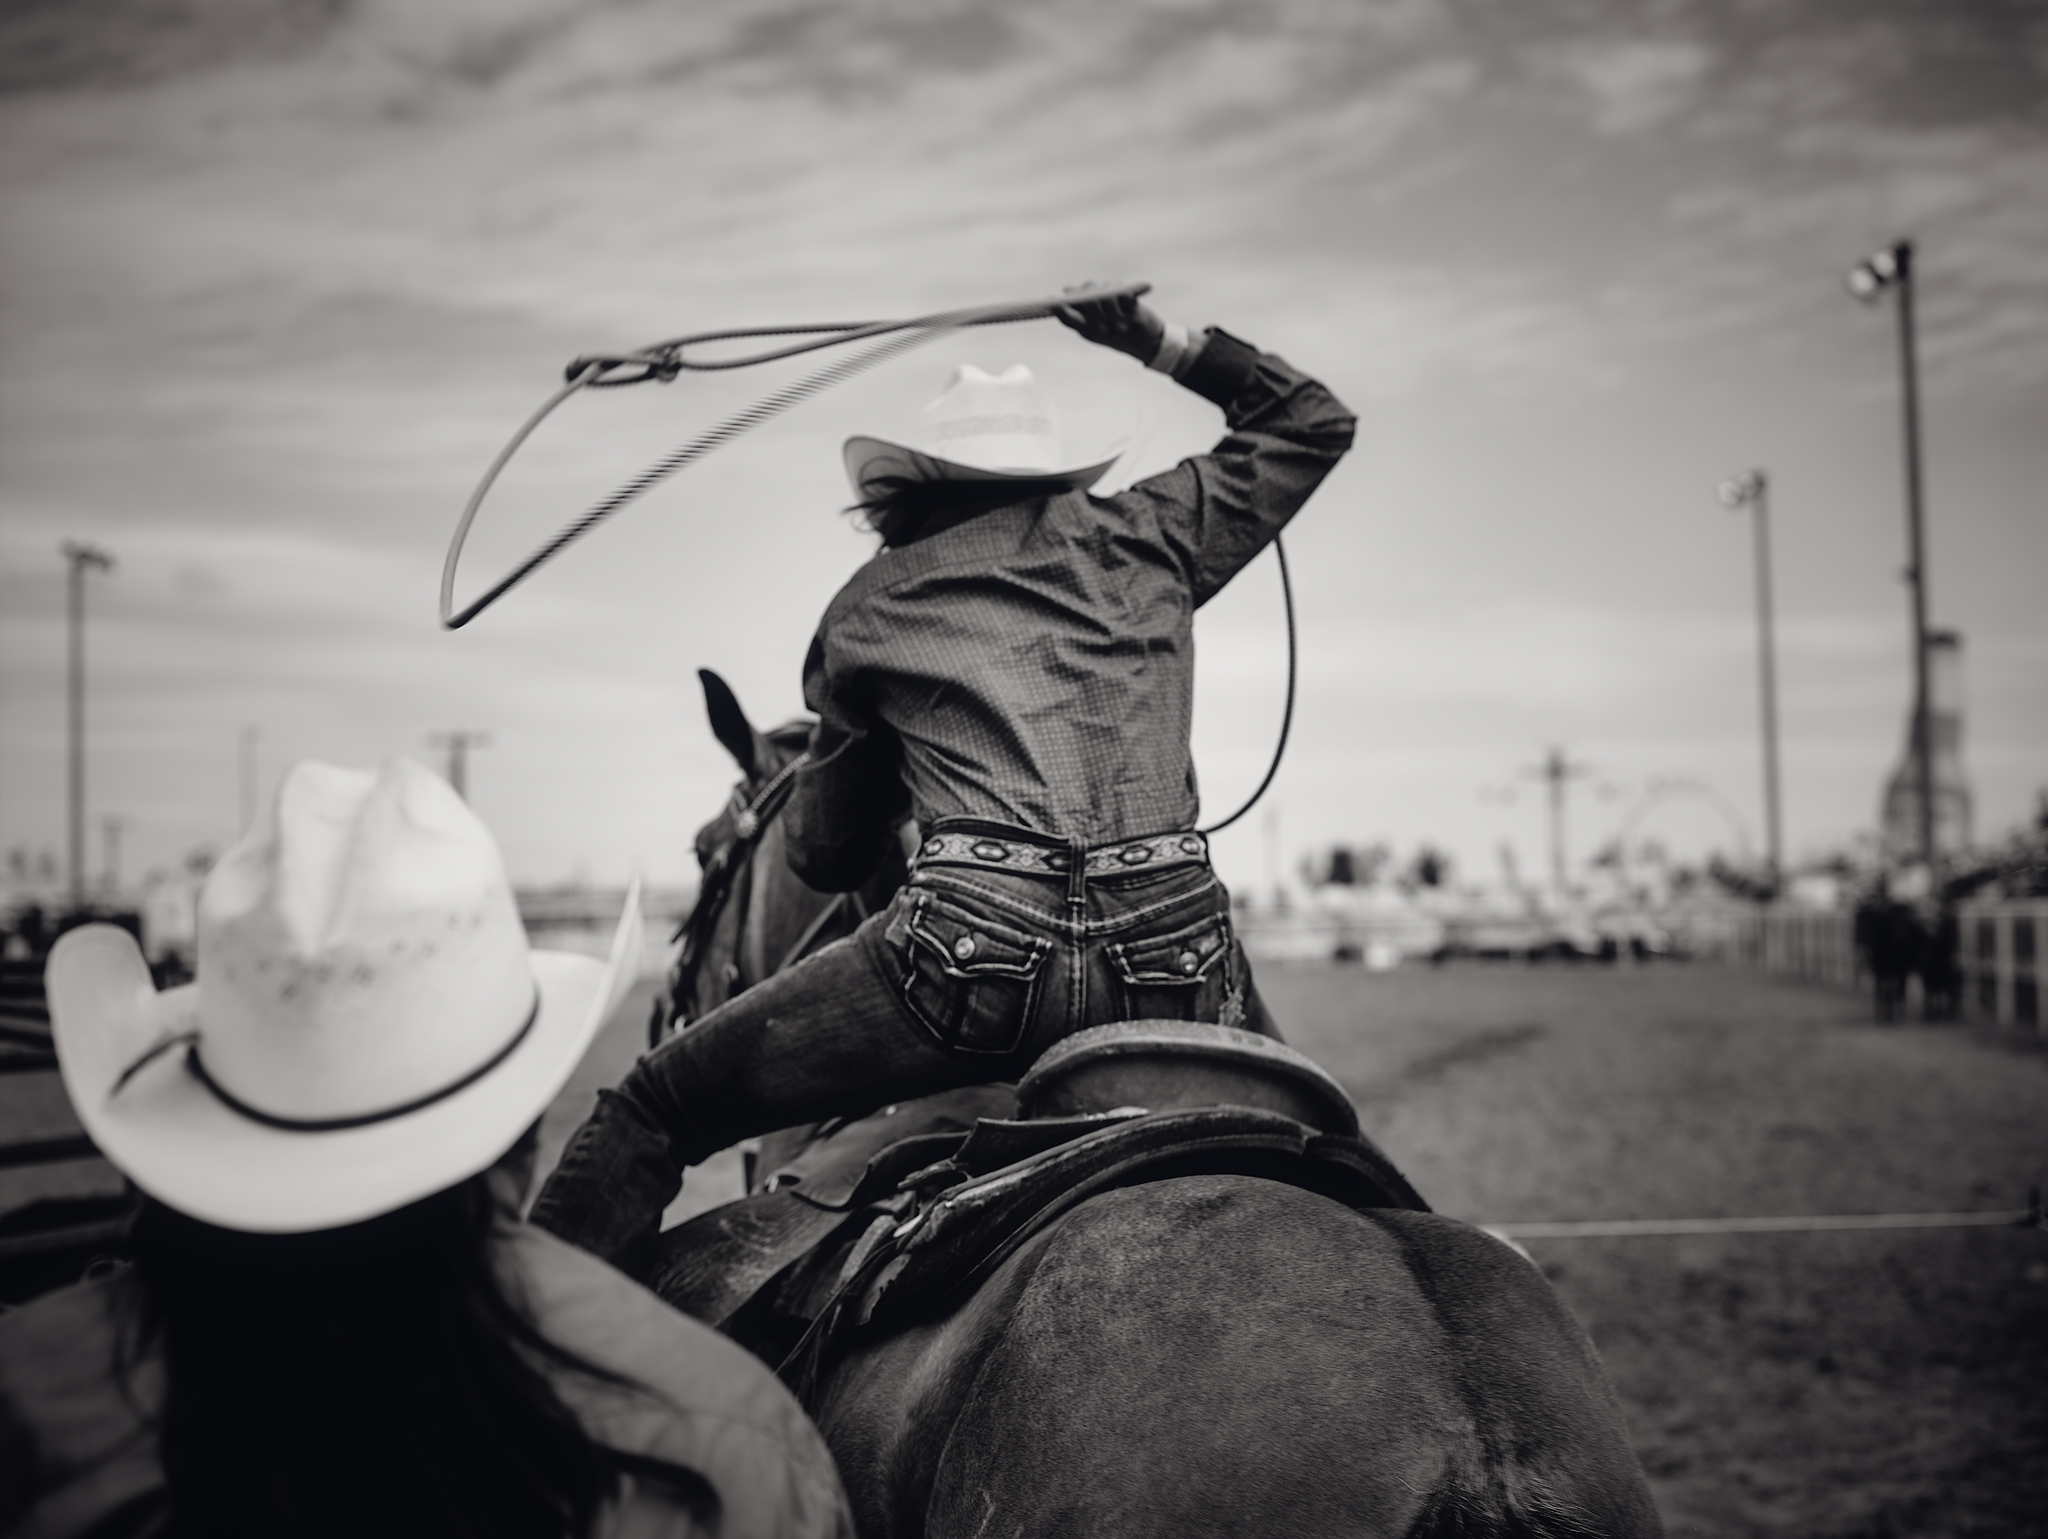 arizona photographer, arizona photography, rodeo, rodeo photography, rodeo photographer, photographer of the american west